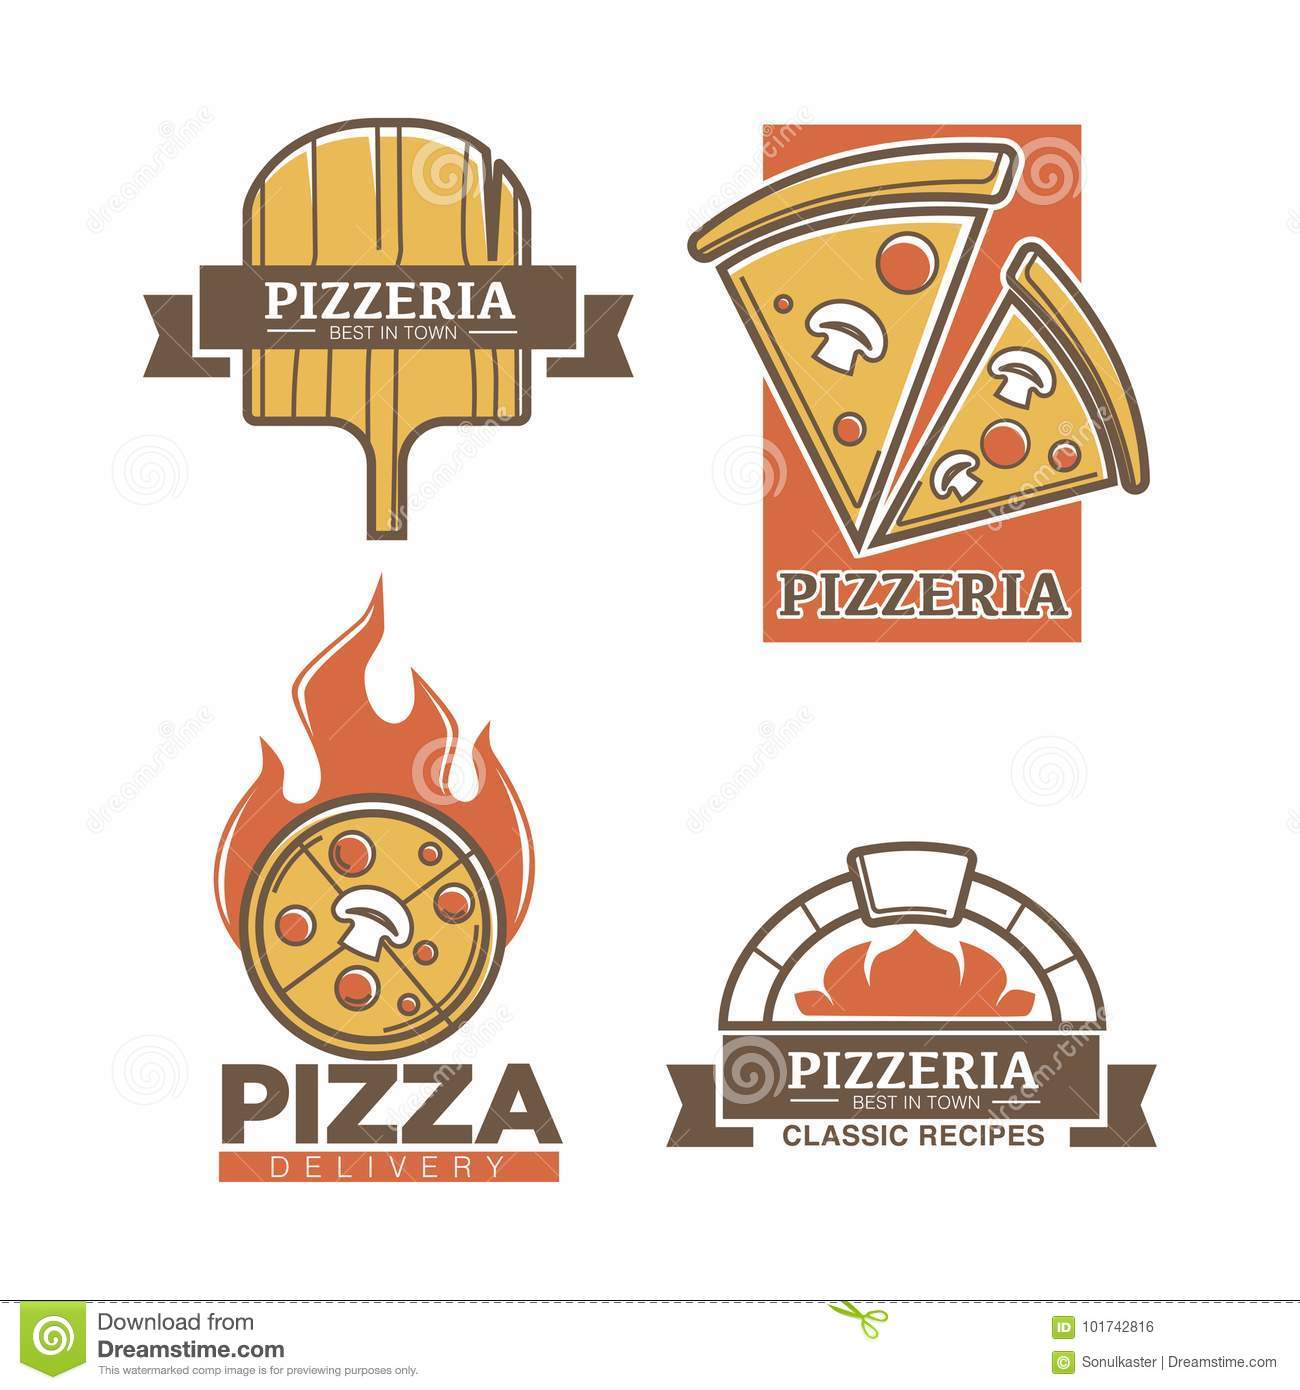 Pizzeria Pizza Vector Icons For Italian Restaurant Delivery Or Sign Stock Vector Illustration Of Fastfood Capricciosa 101742816